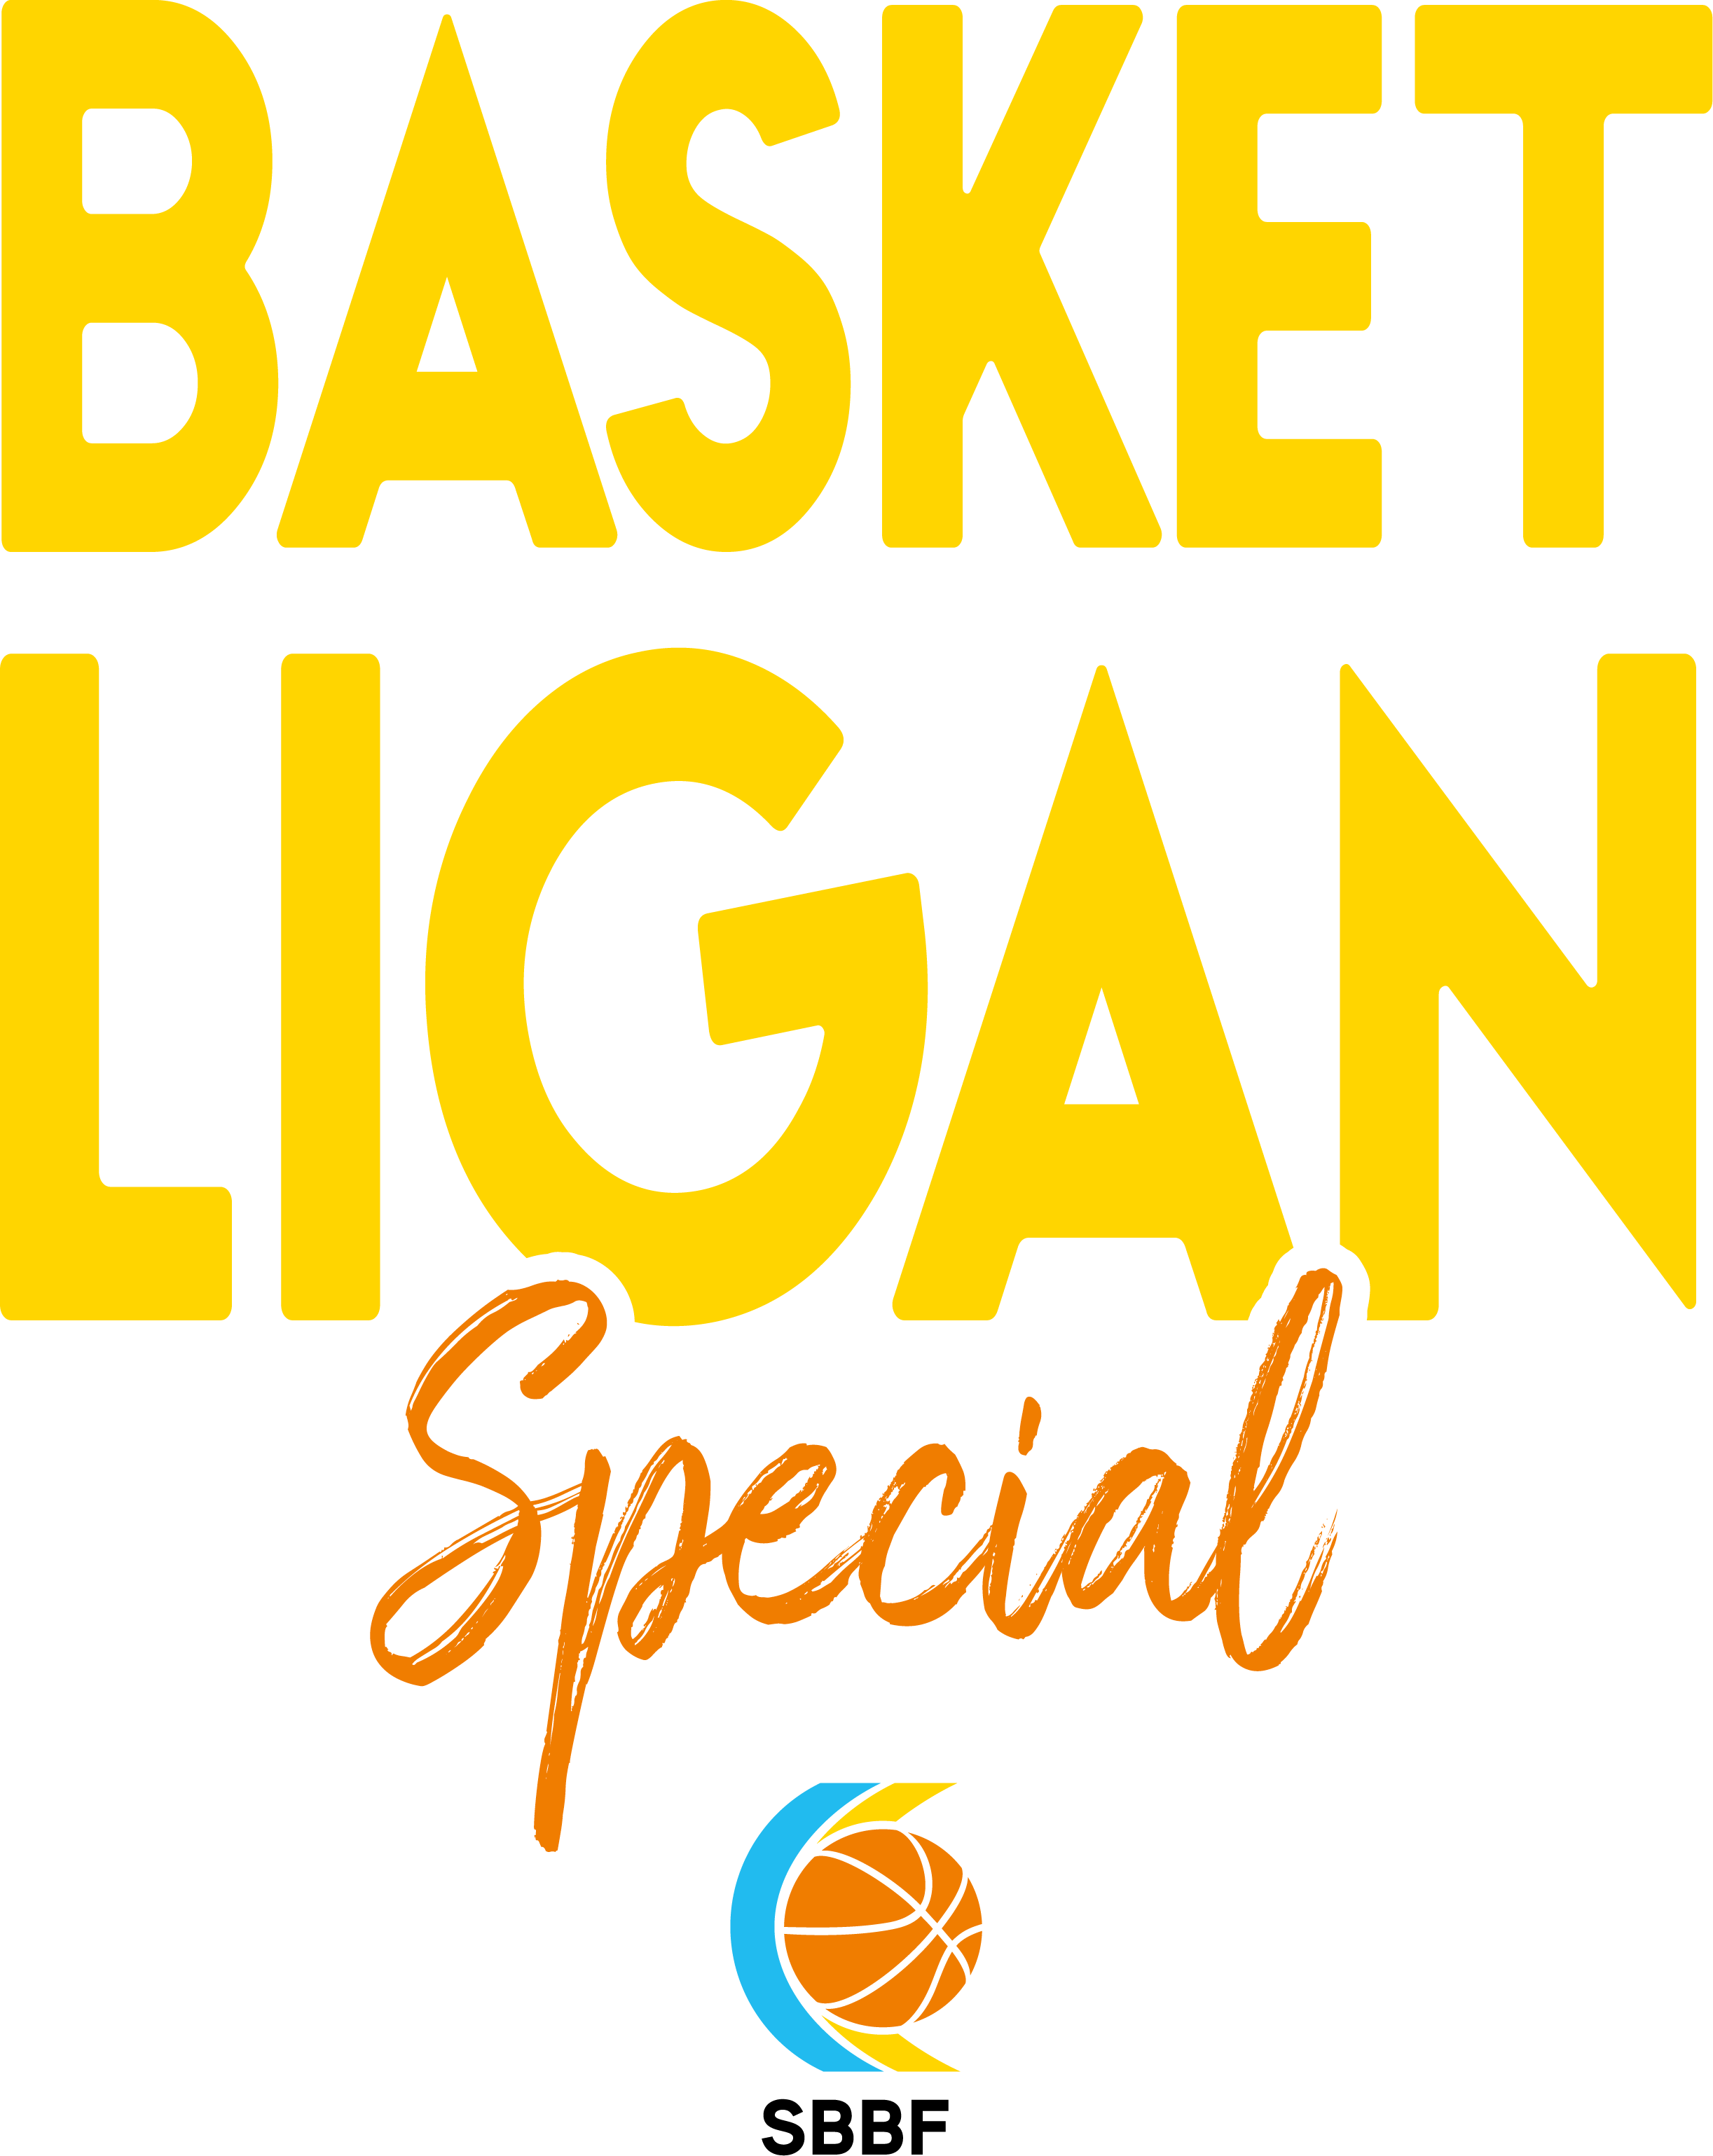 SBBF Basketligan Special